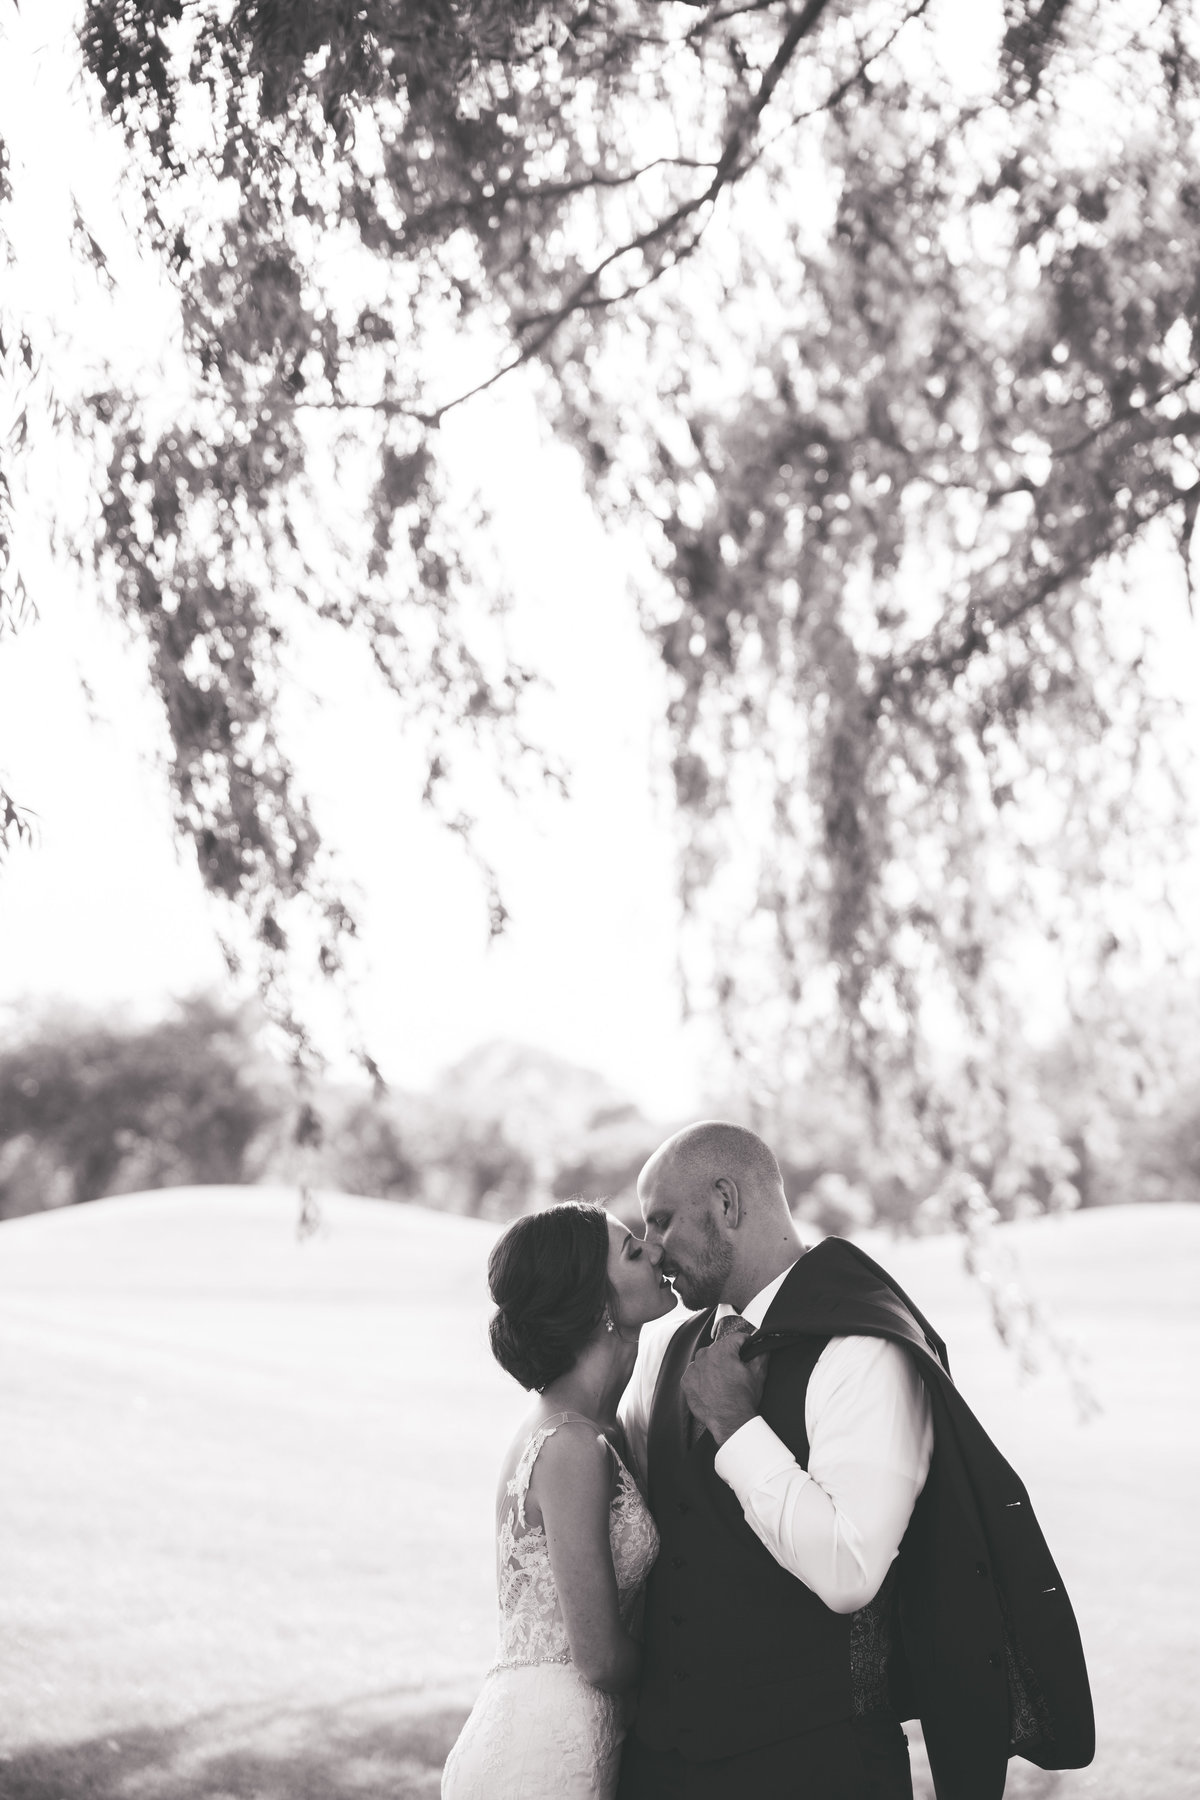 Danae+Sonny.weddingday.ellAdelephotography-840